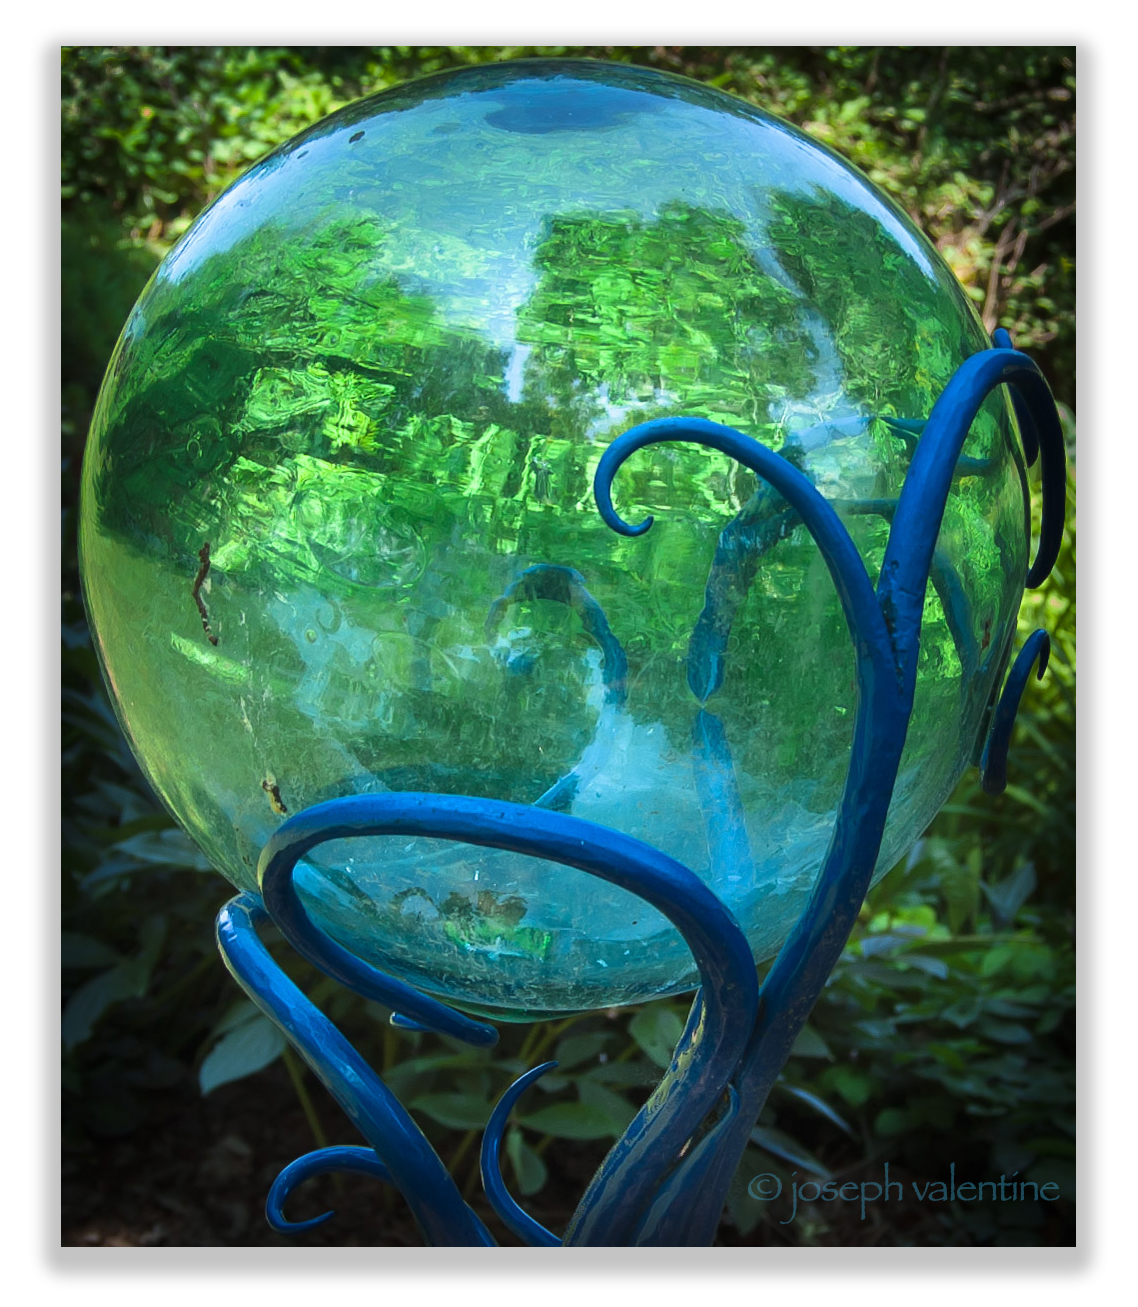 This glass reflecting ball at Bedrock Gardens in Lee, New Hampshire is doing its job!